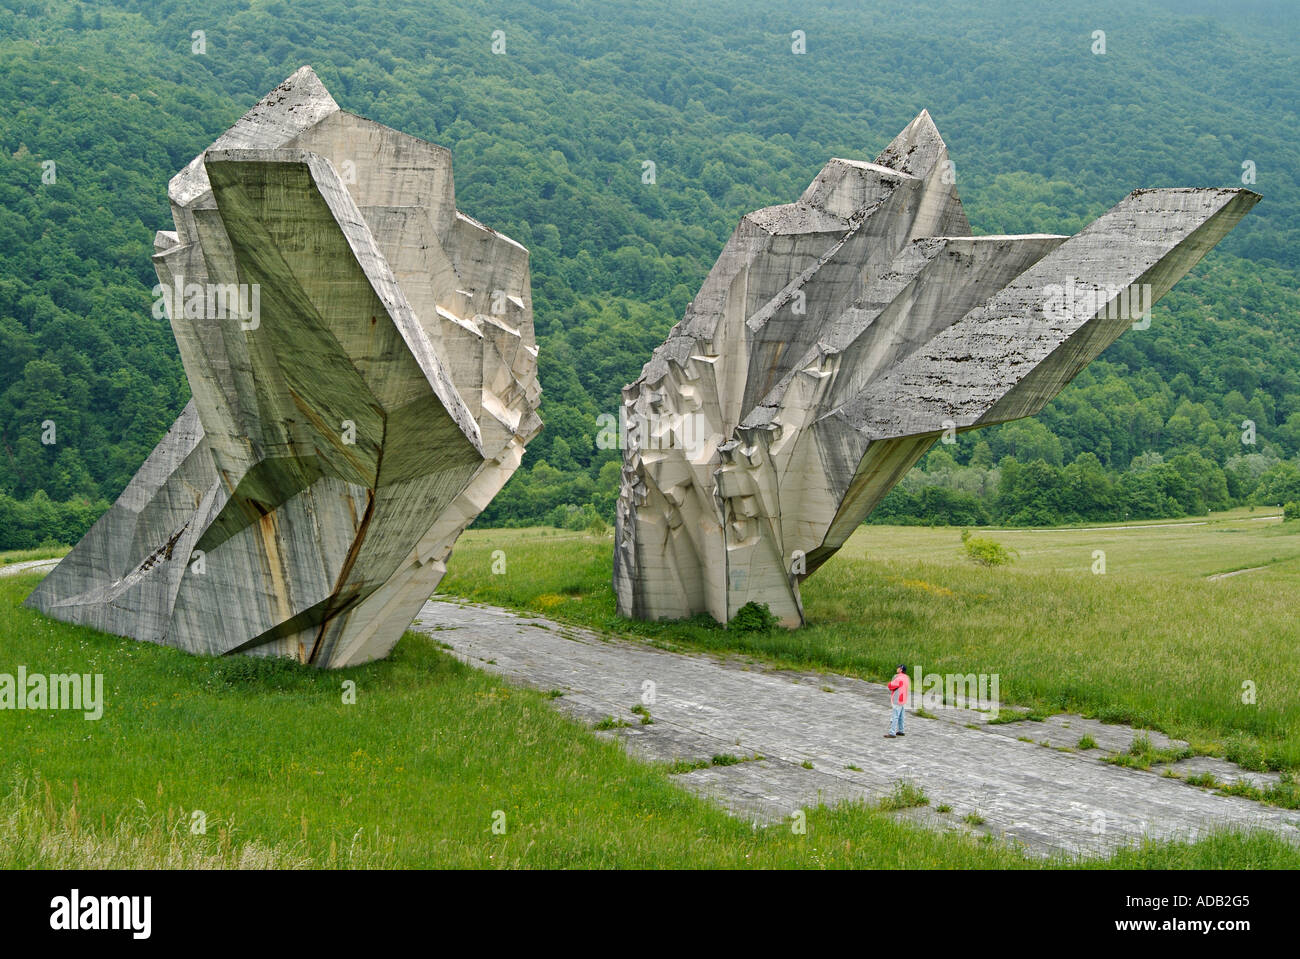 Lone Man Looking at the Sutjeska Monument Built to Commemorate the 3301 Partisan Fighters Killed by Nazi Germans and Croatians - Stock Image